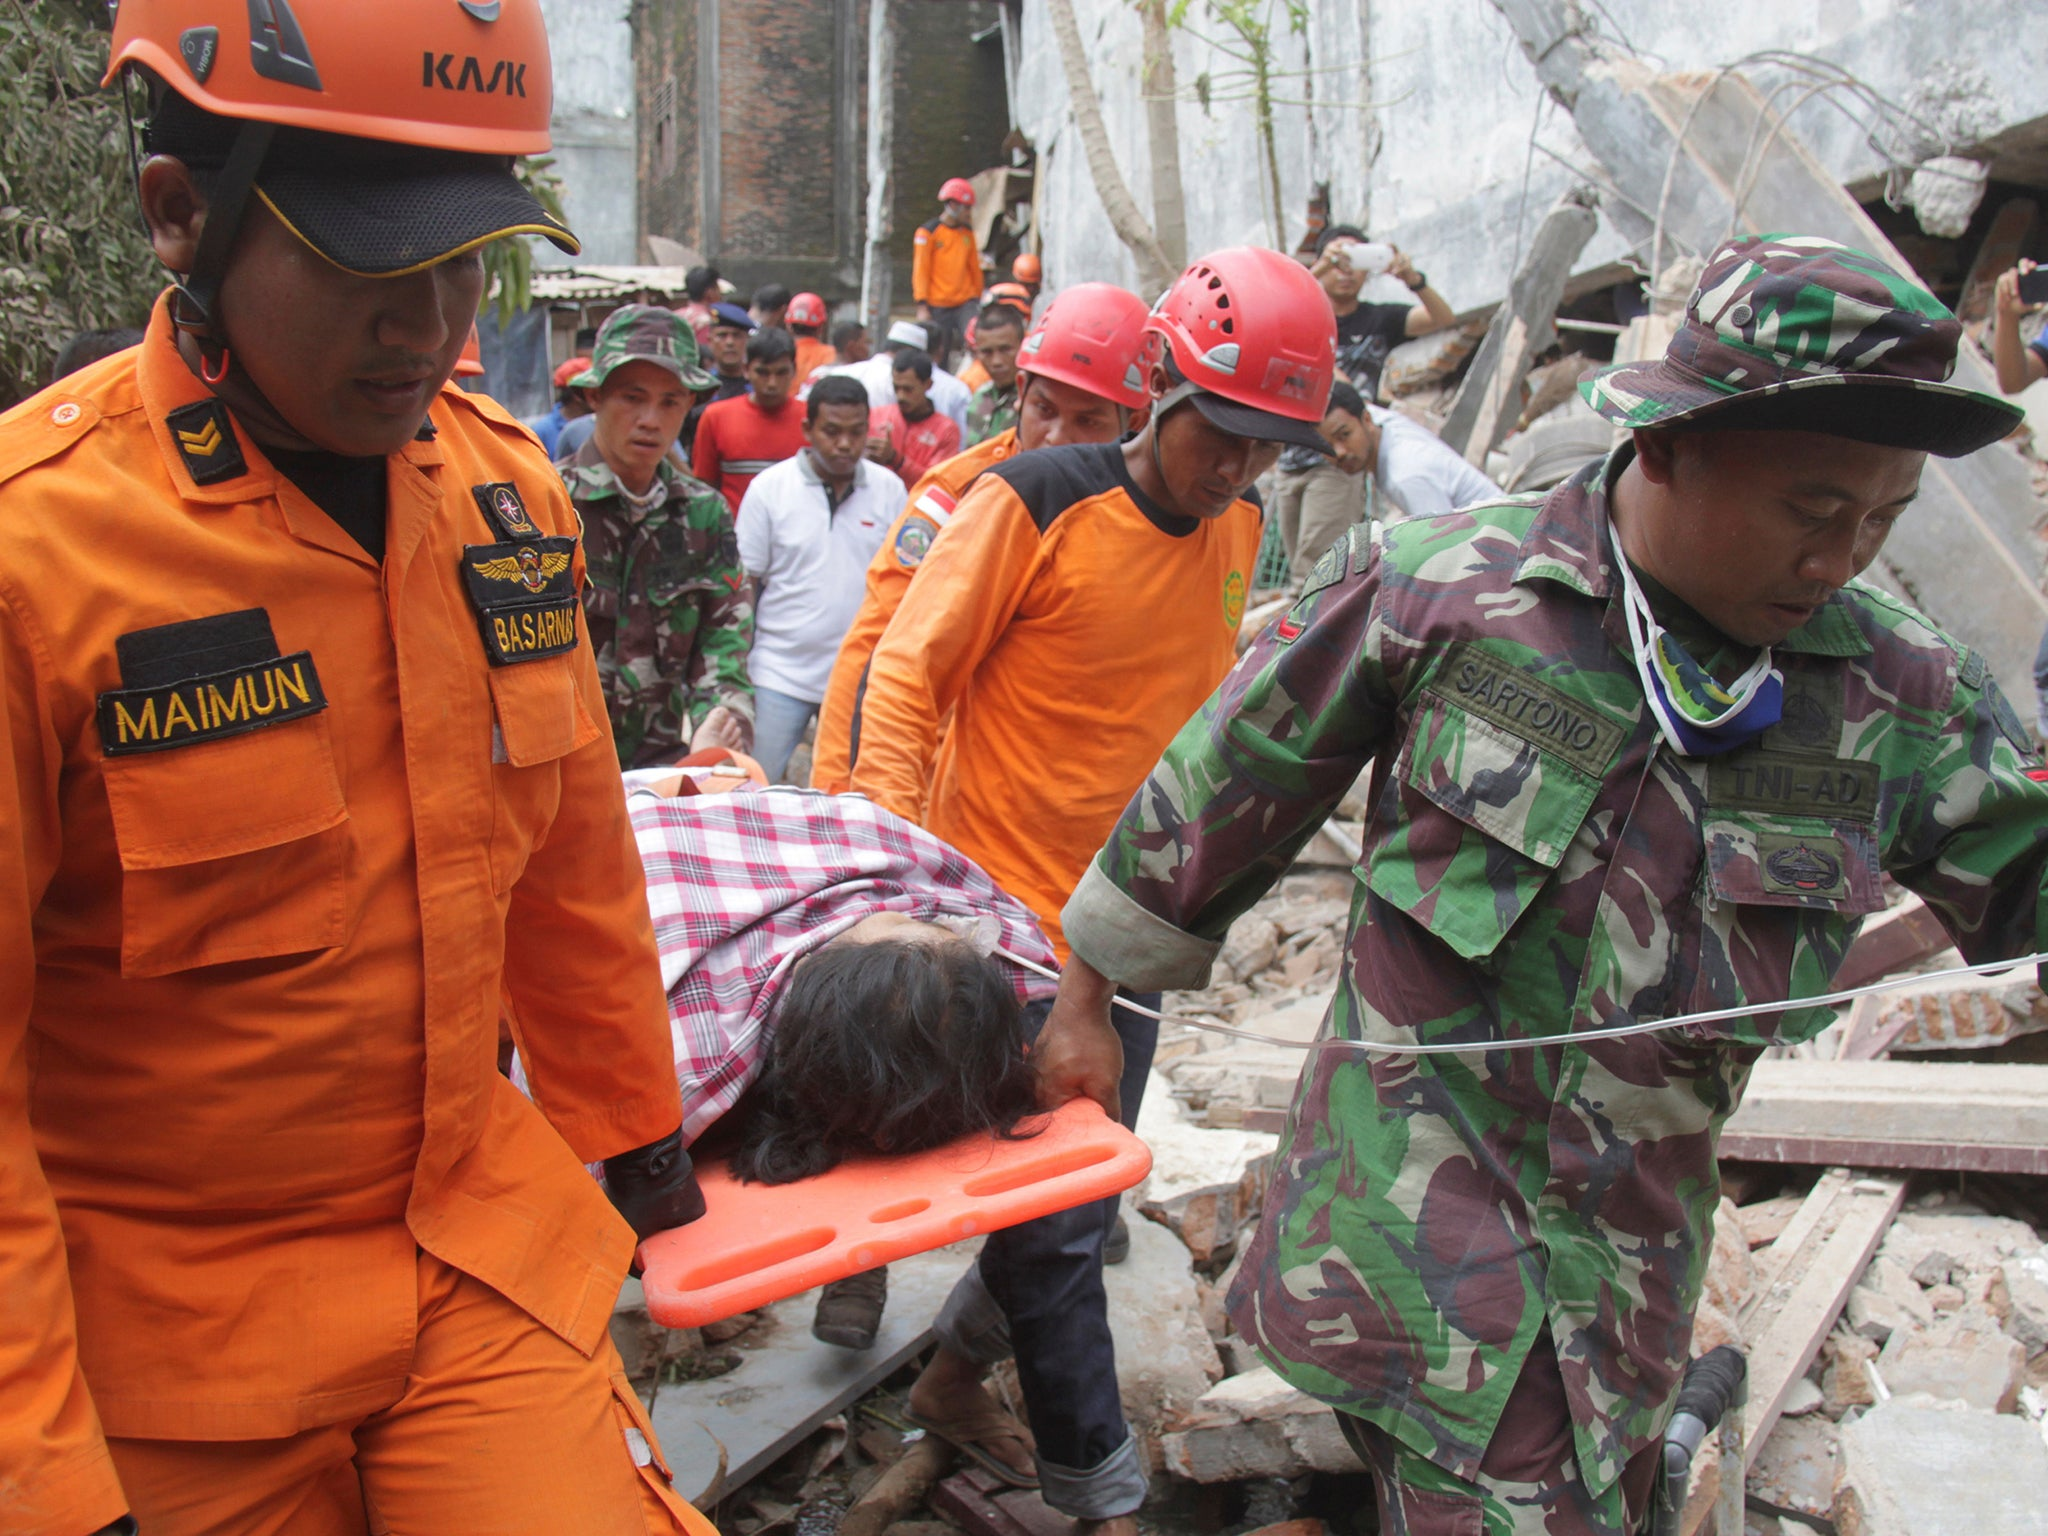 Indonesian earthquake death toll rises to 102 as rescue efforts continue  The Independent